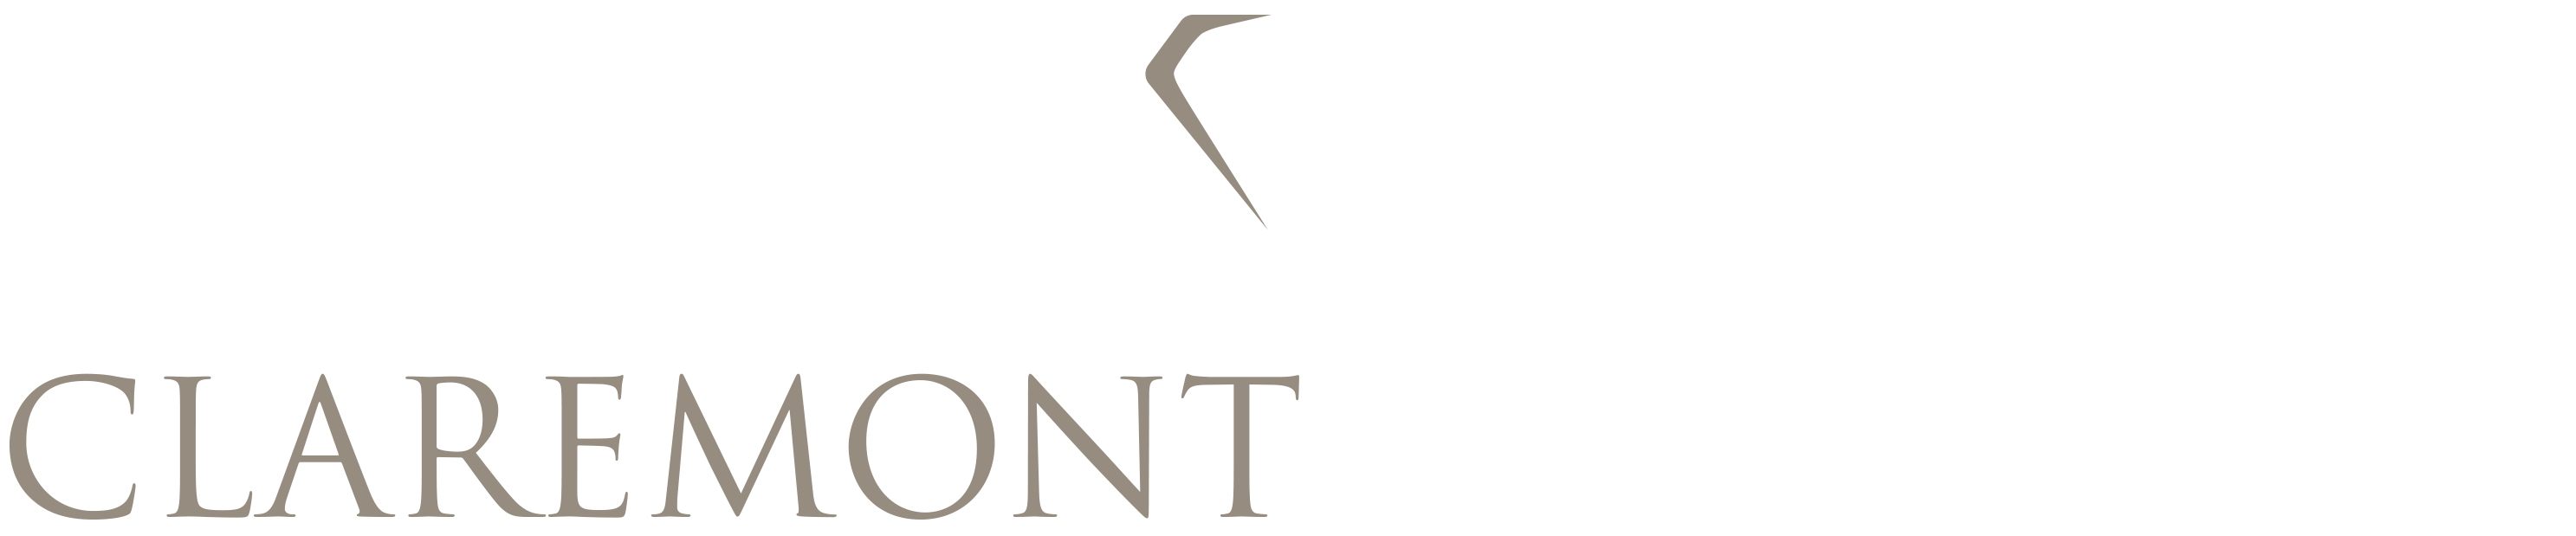 Claremont Diamonds – Perth Engagement Rings & Custom Jewellery